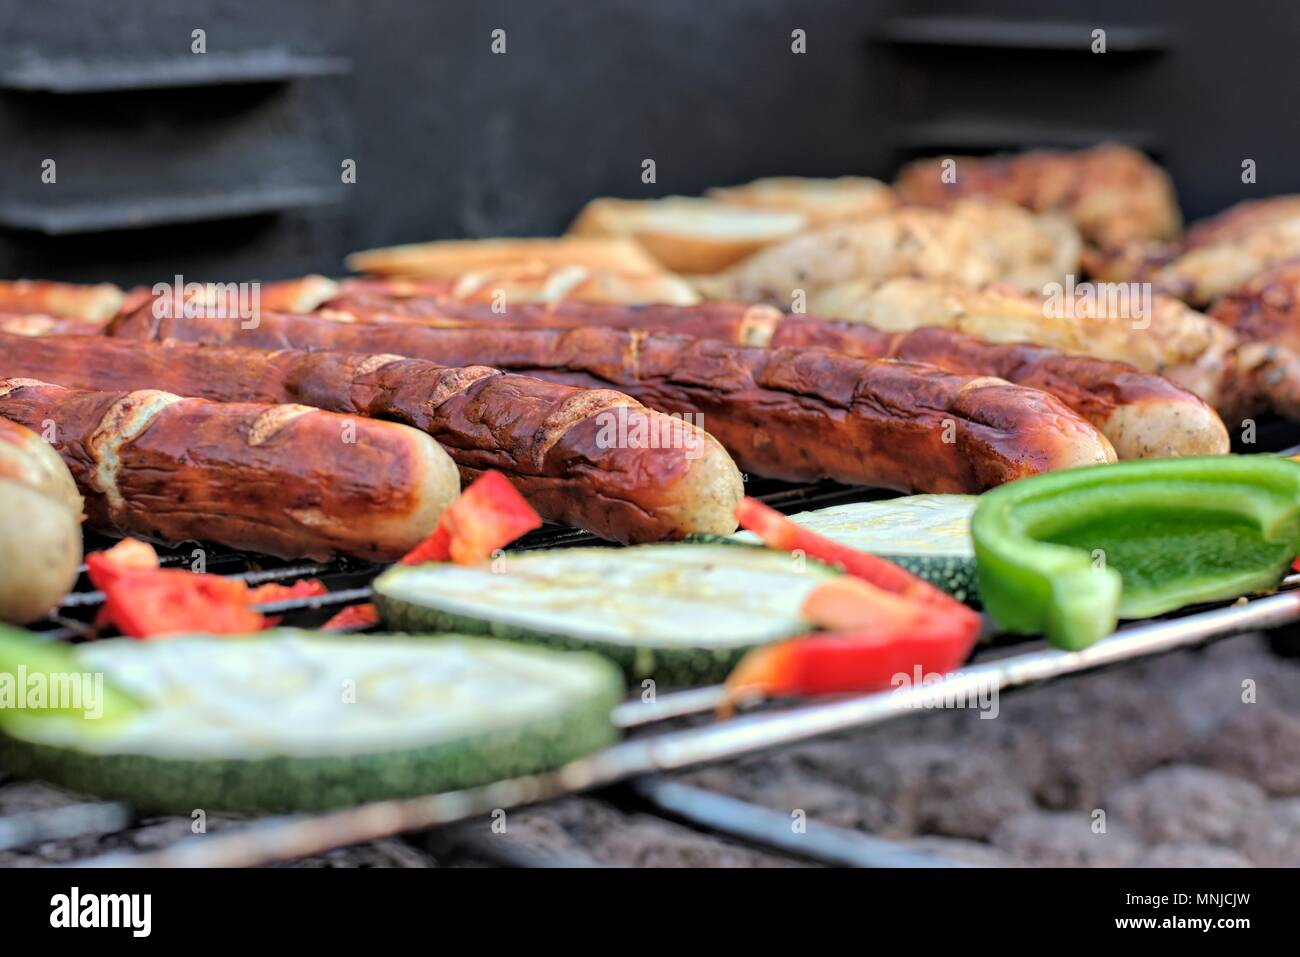 Tasty food, nutrition, culinary and barbecue concept: grilled sausages,chicken thigh and vegetables on a barbeque. - Stock Image